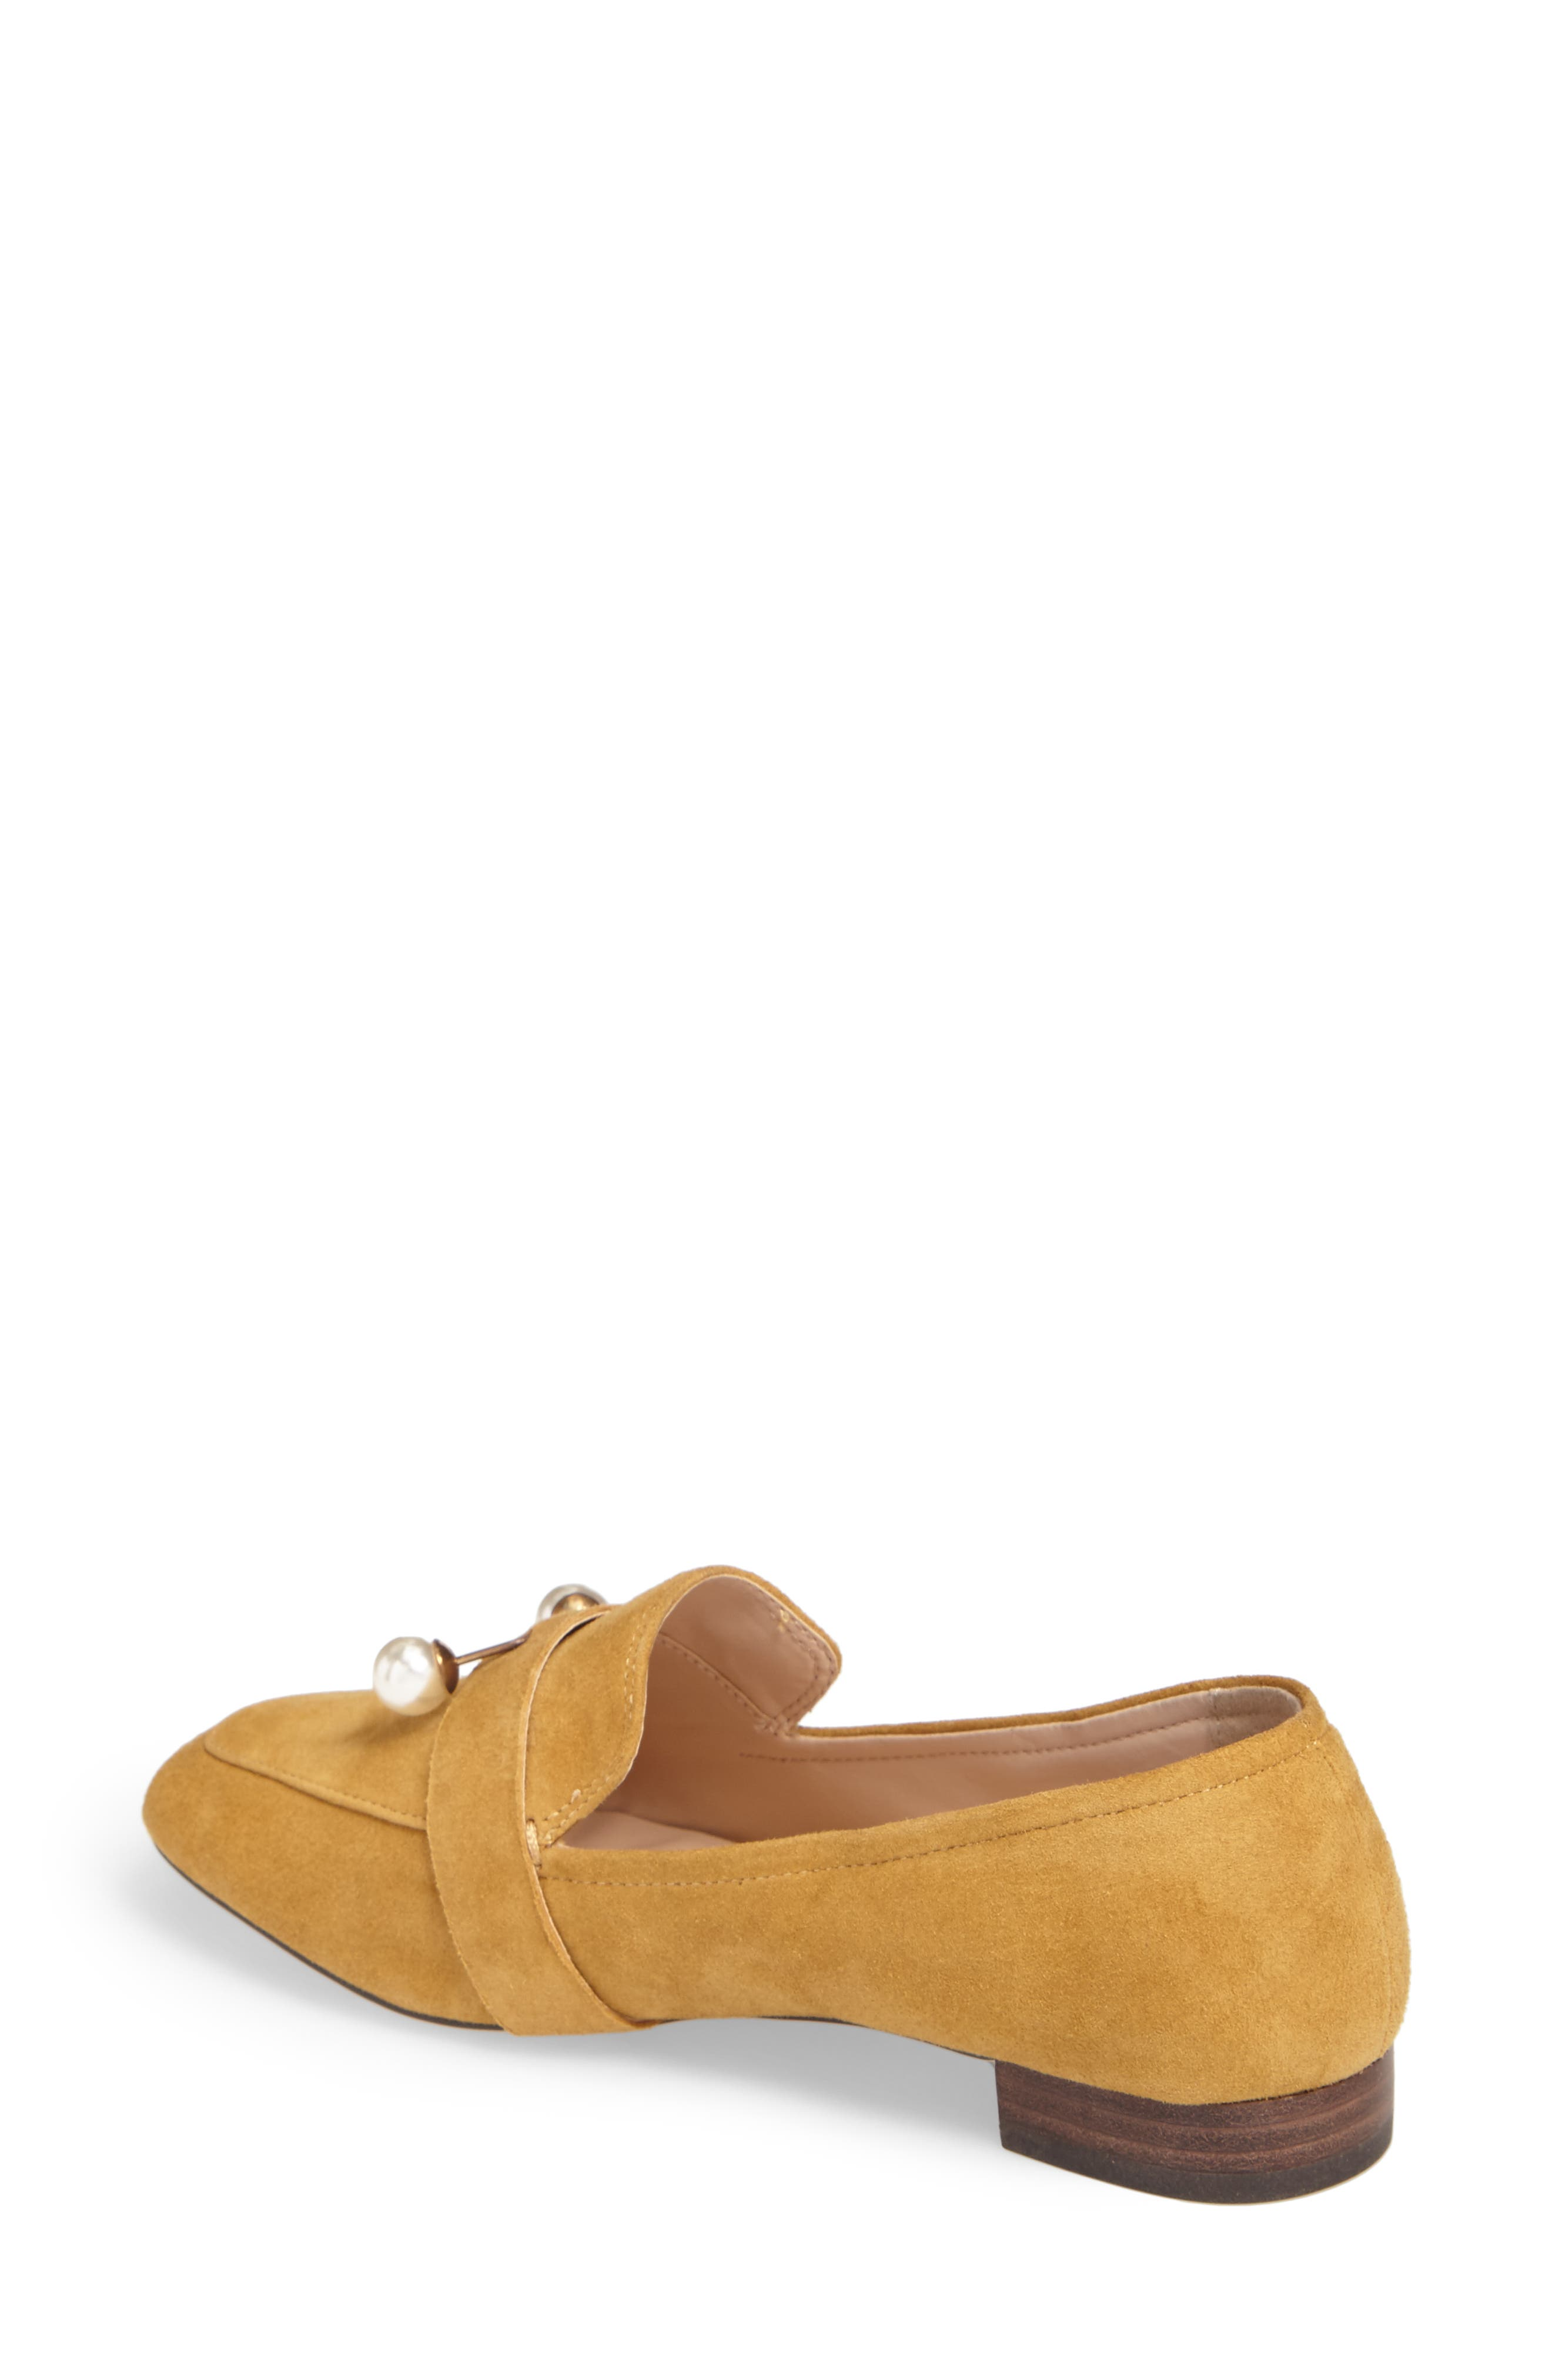 Caspar Loafer,                             Alternate thumbnail 8, color,